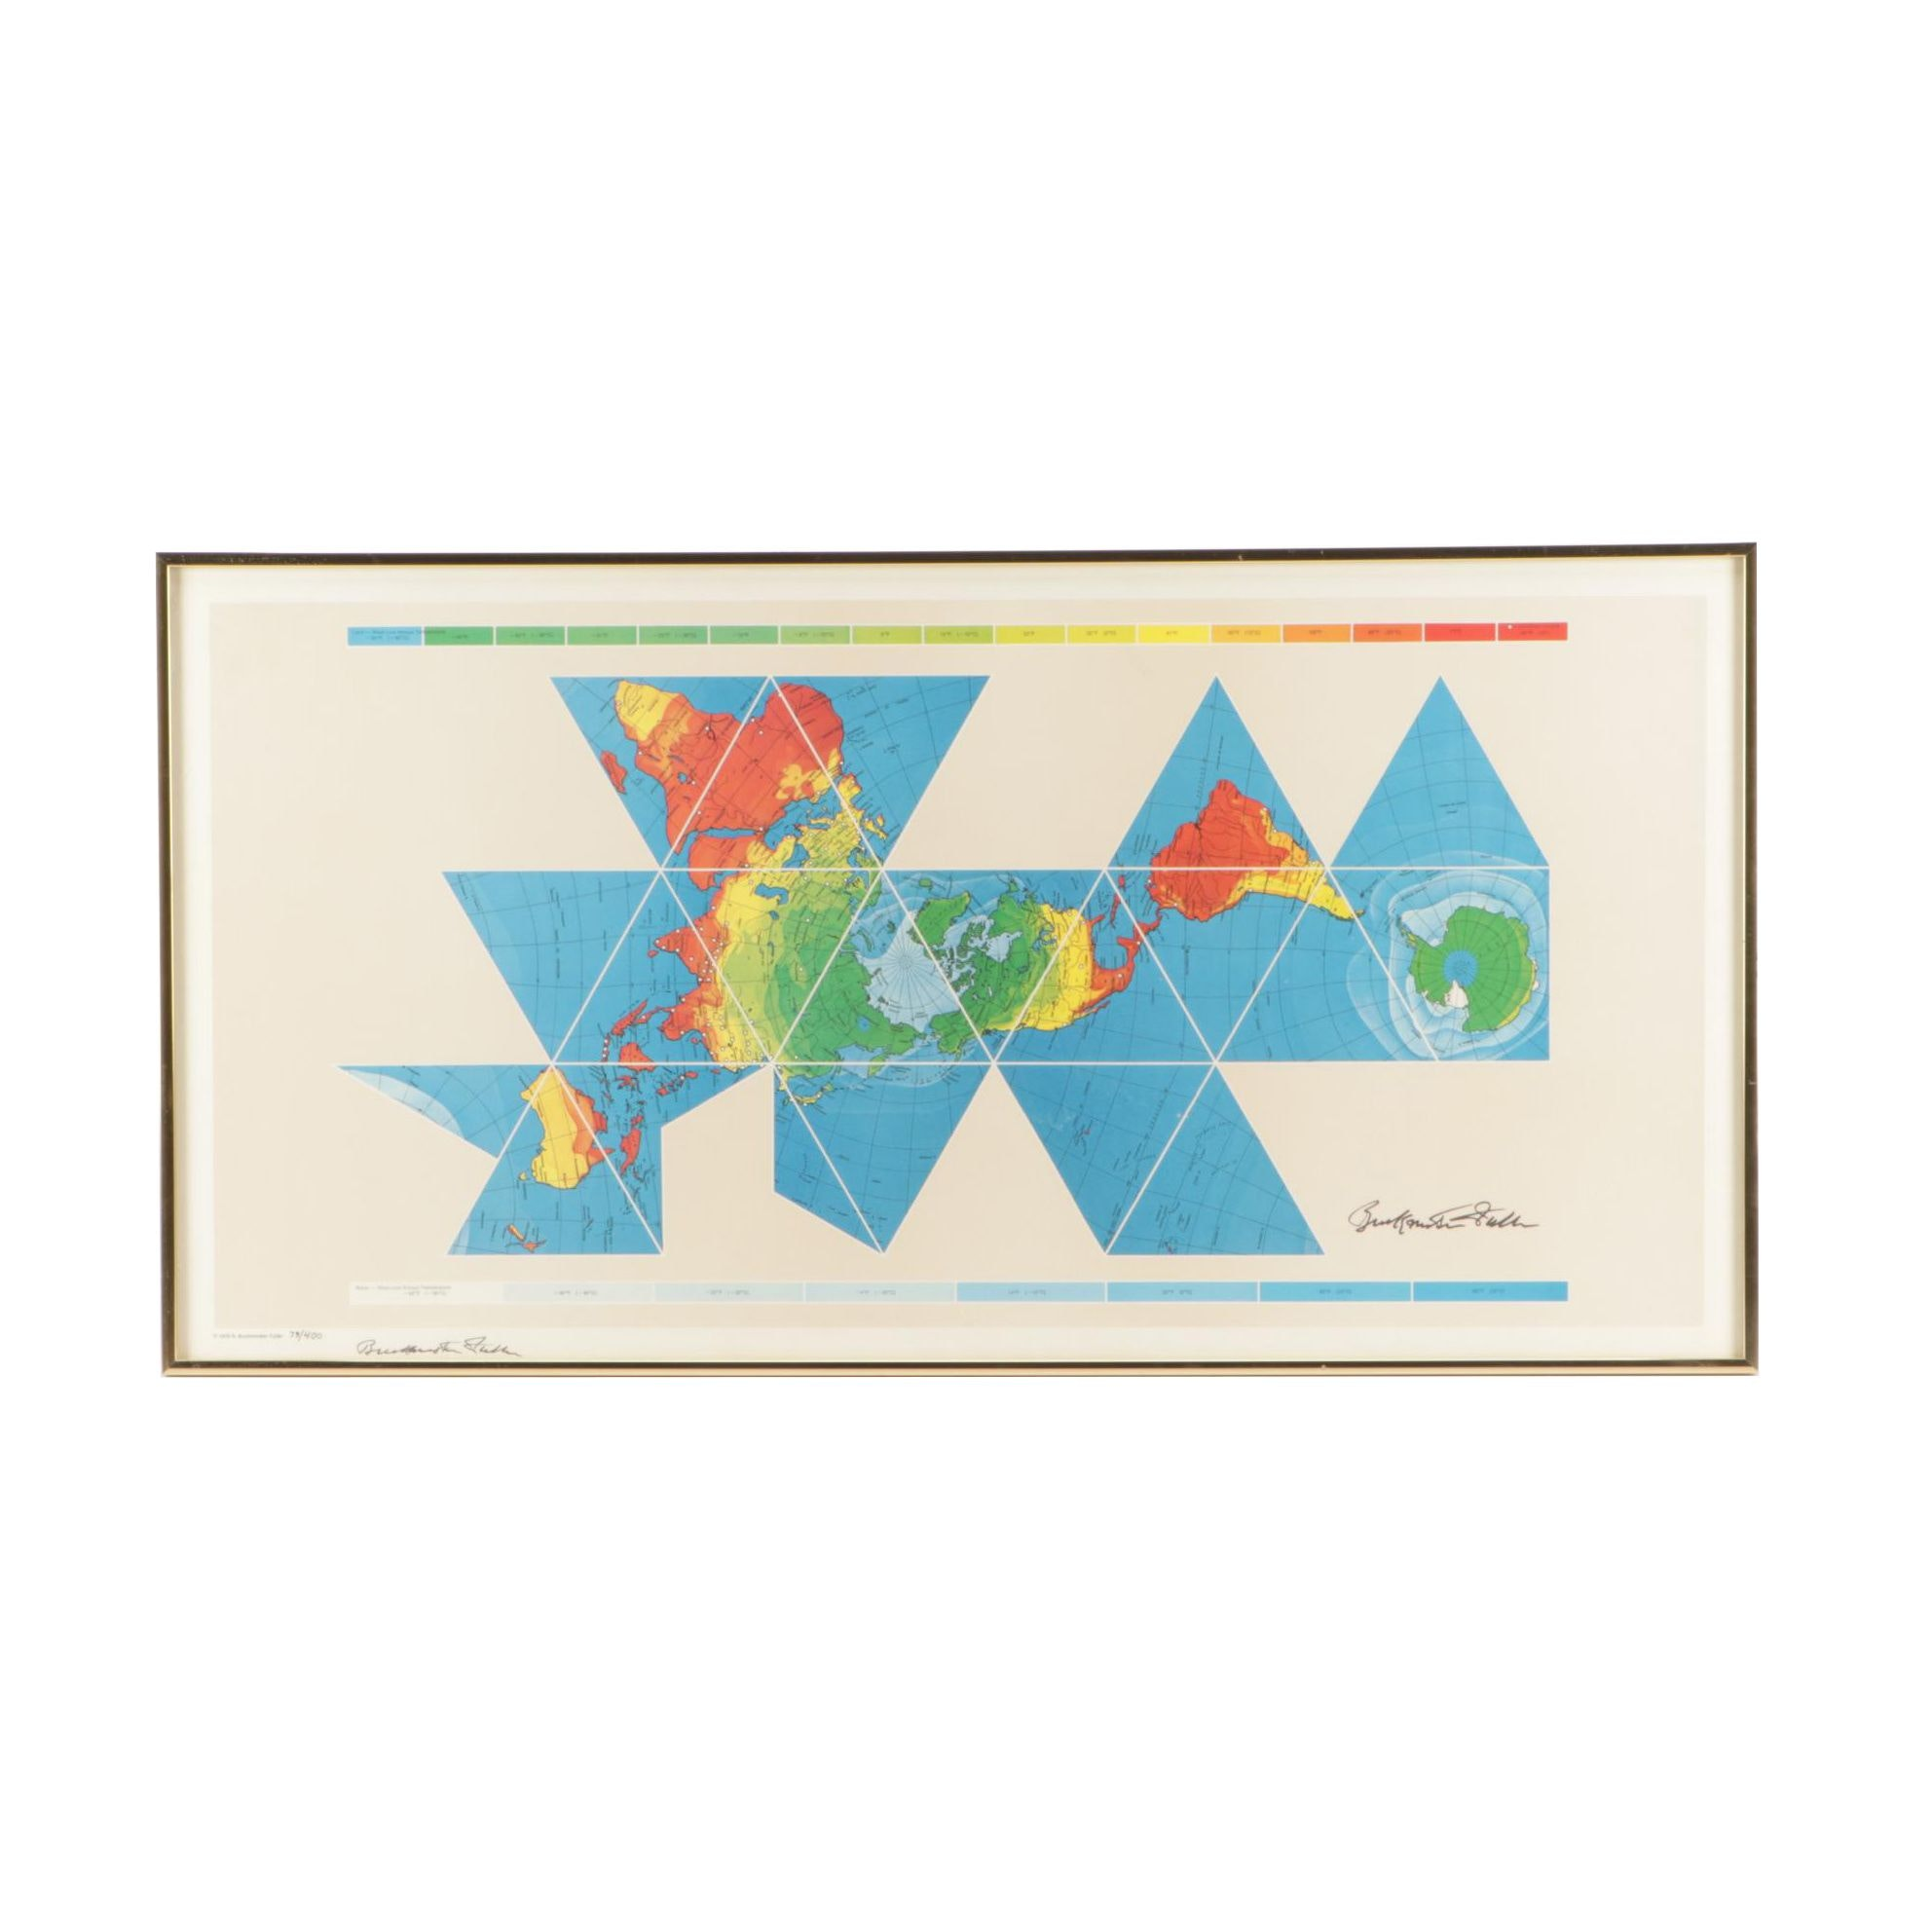 Buckminster Fuller Limited Edition Offset Lithograph of World Map